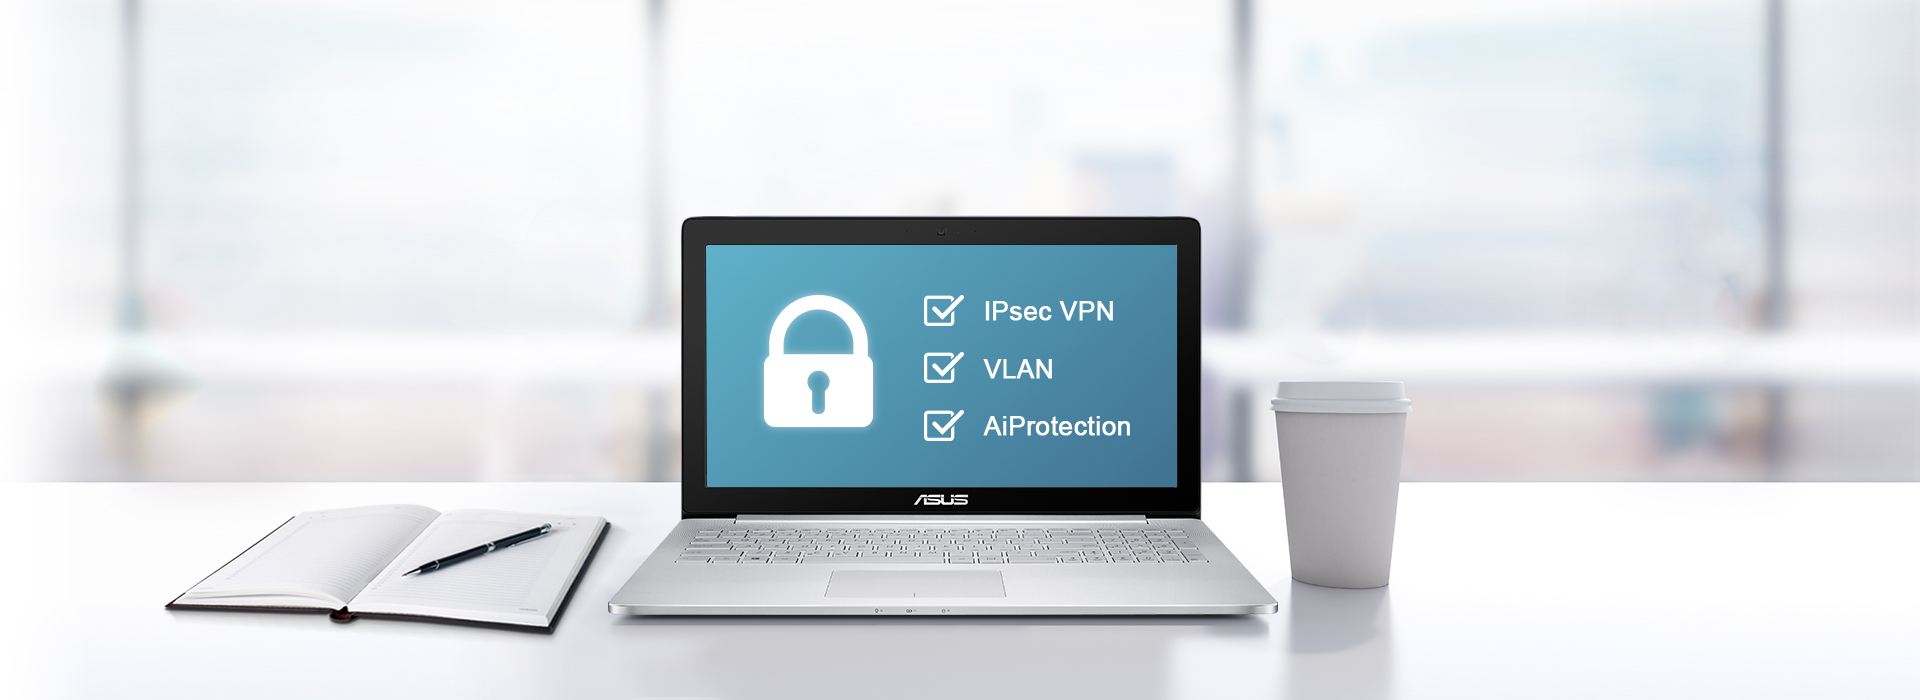 https://dlcdnimgs.asus.com/websites/global/products/pqFNCkhyZCKTlIlU/img/Security.jpg